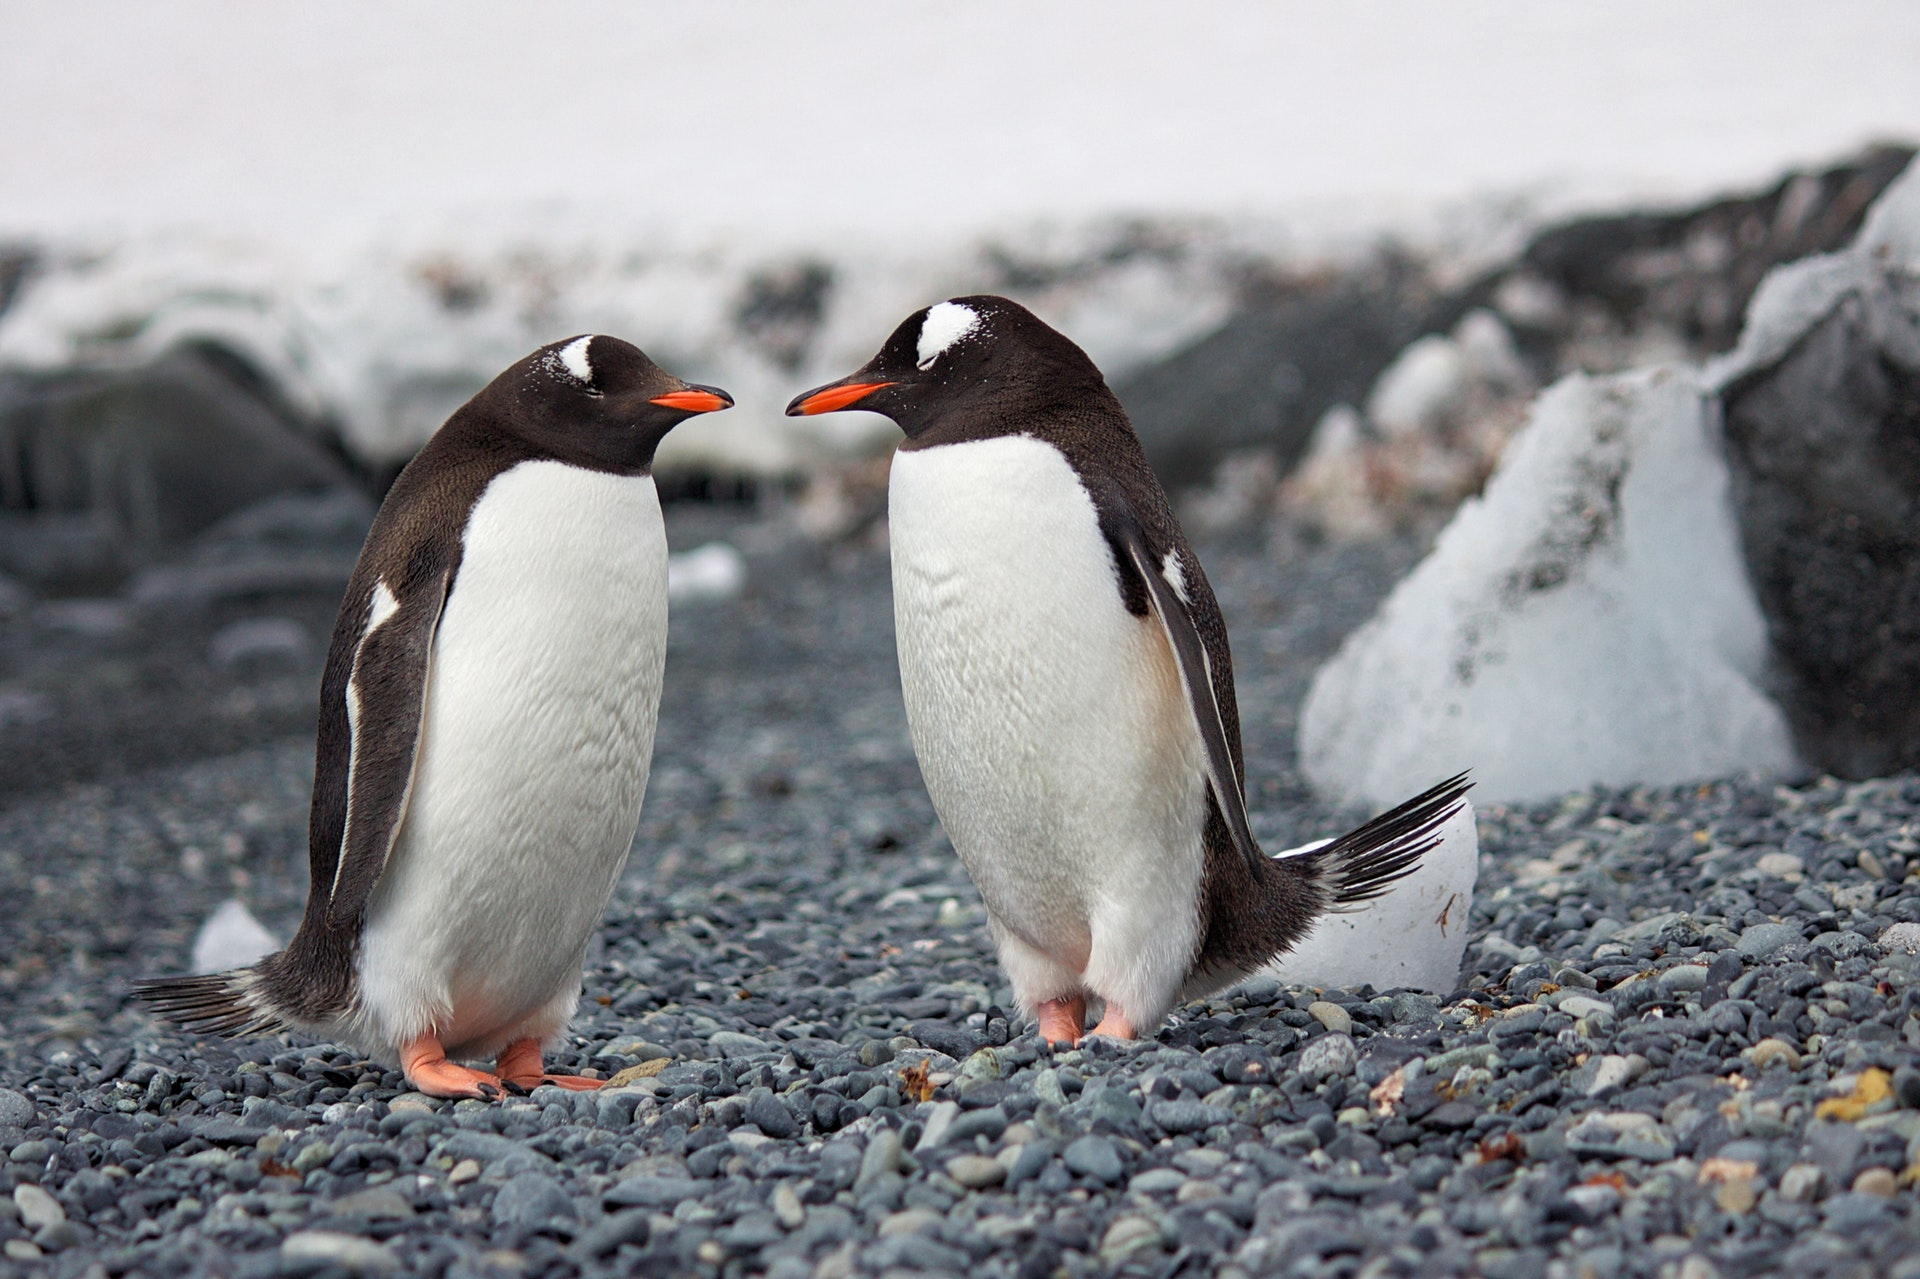 selective-focus-photography-of-two-penguins-689784